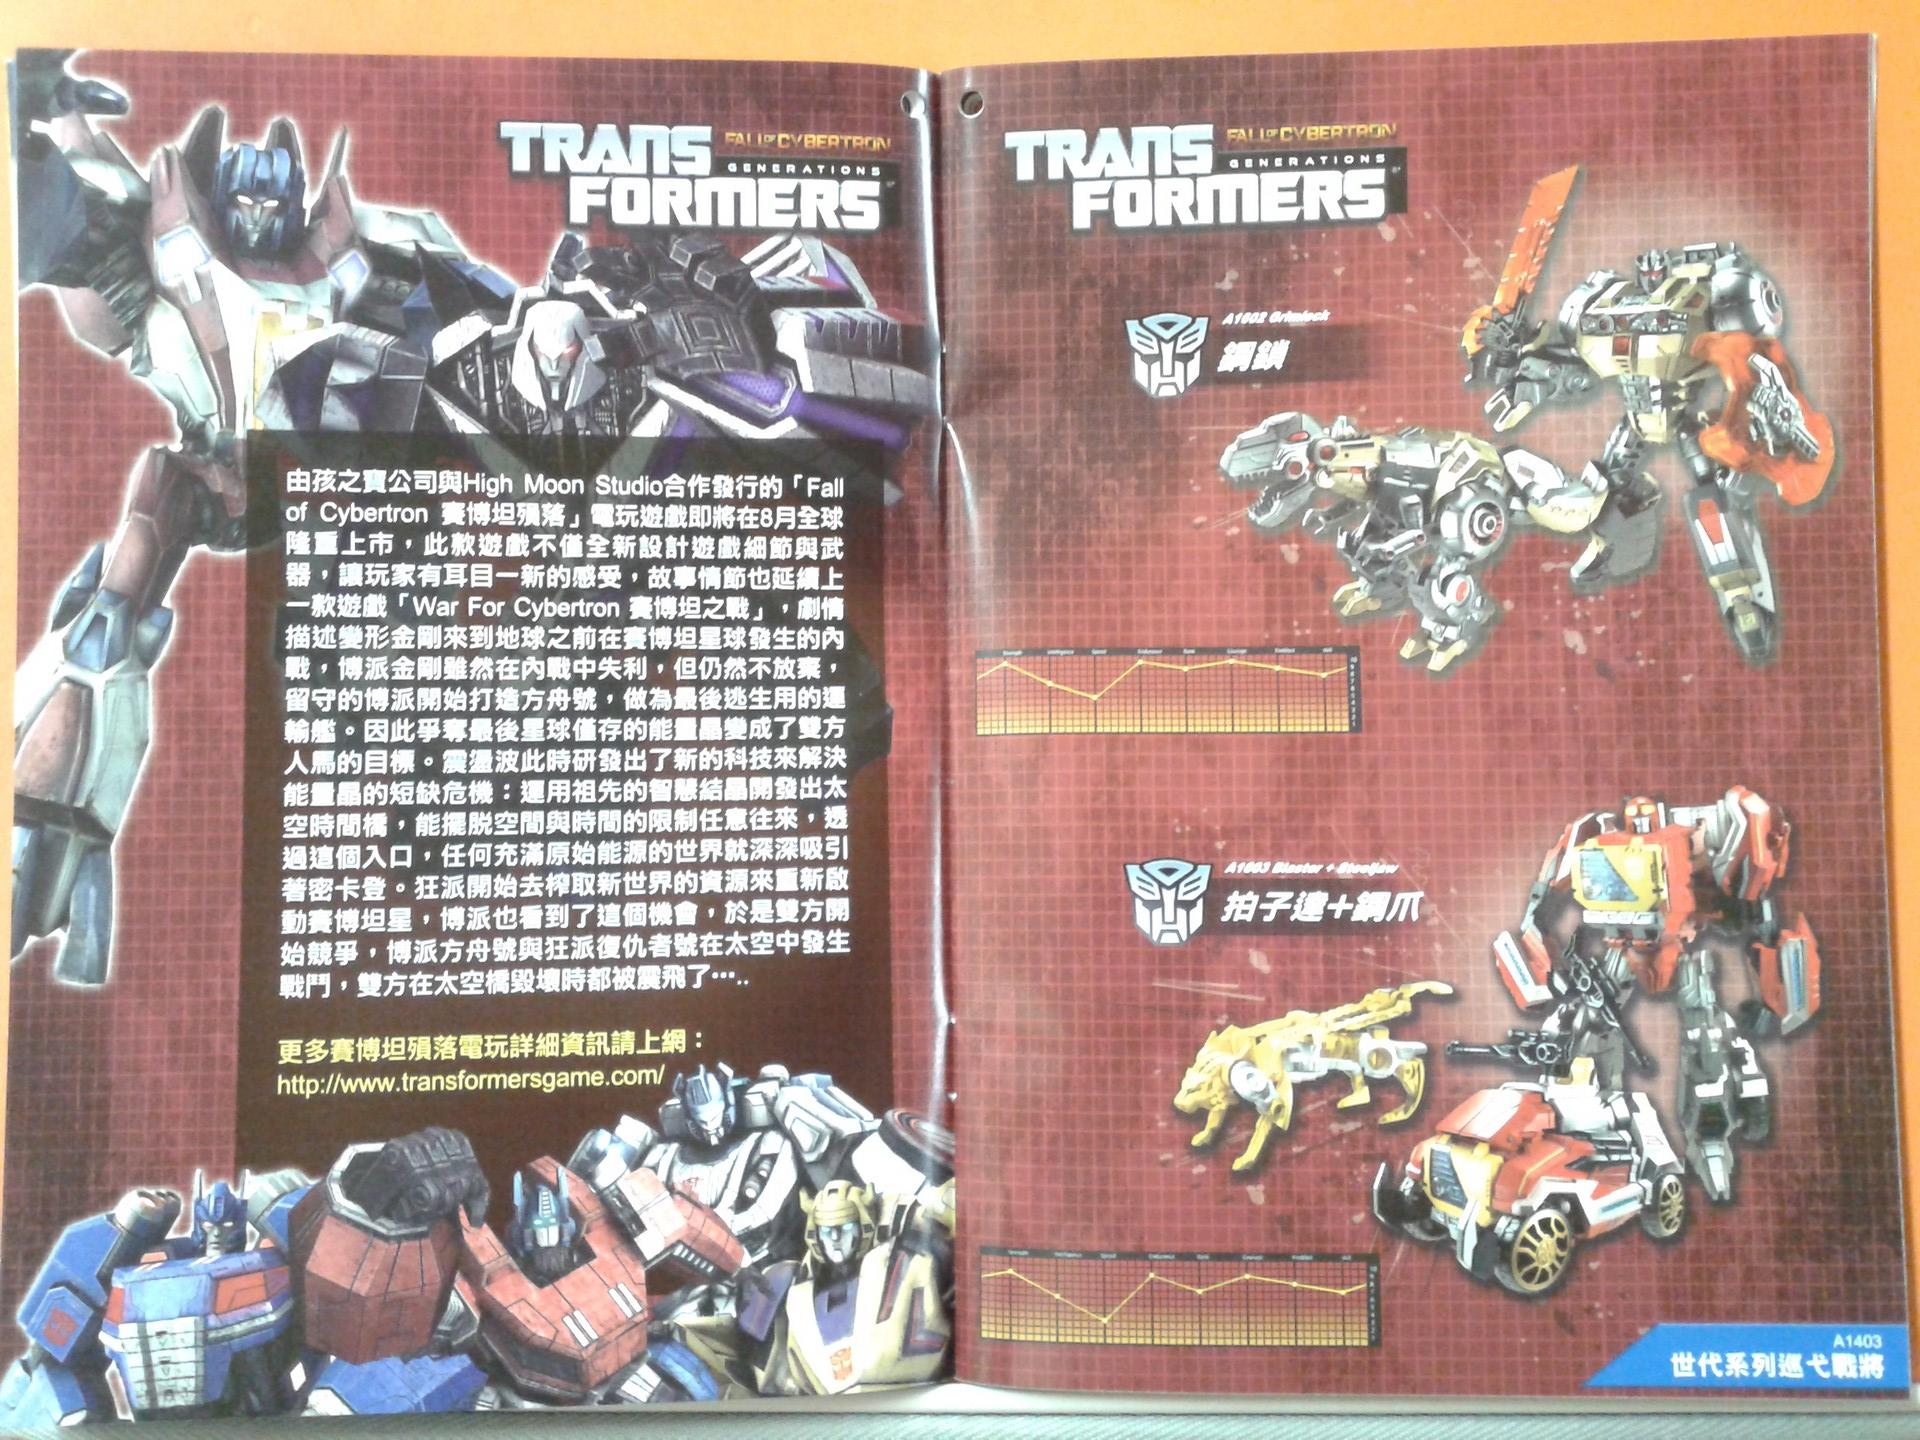 New Taiwan TF Catalog-20130320_164014.jpg